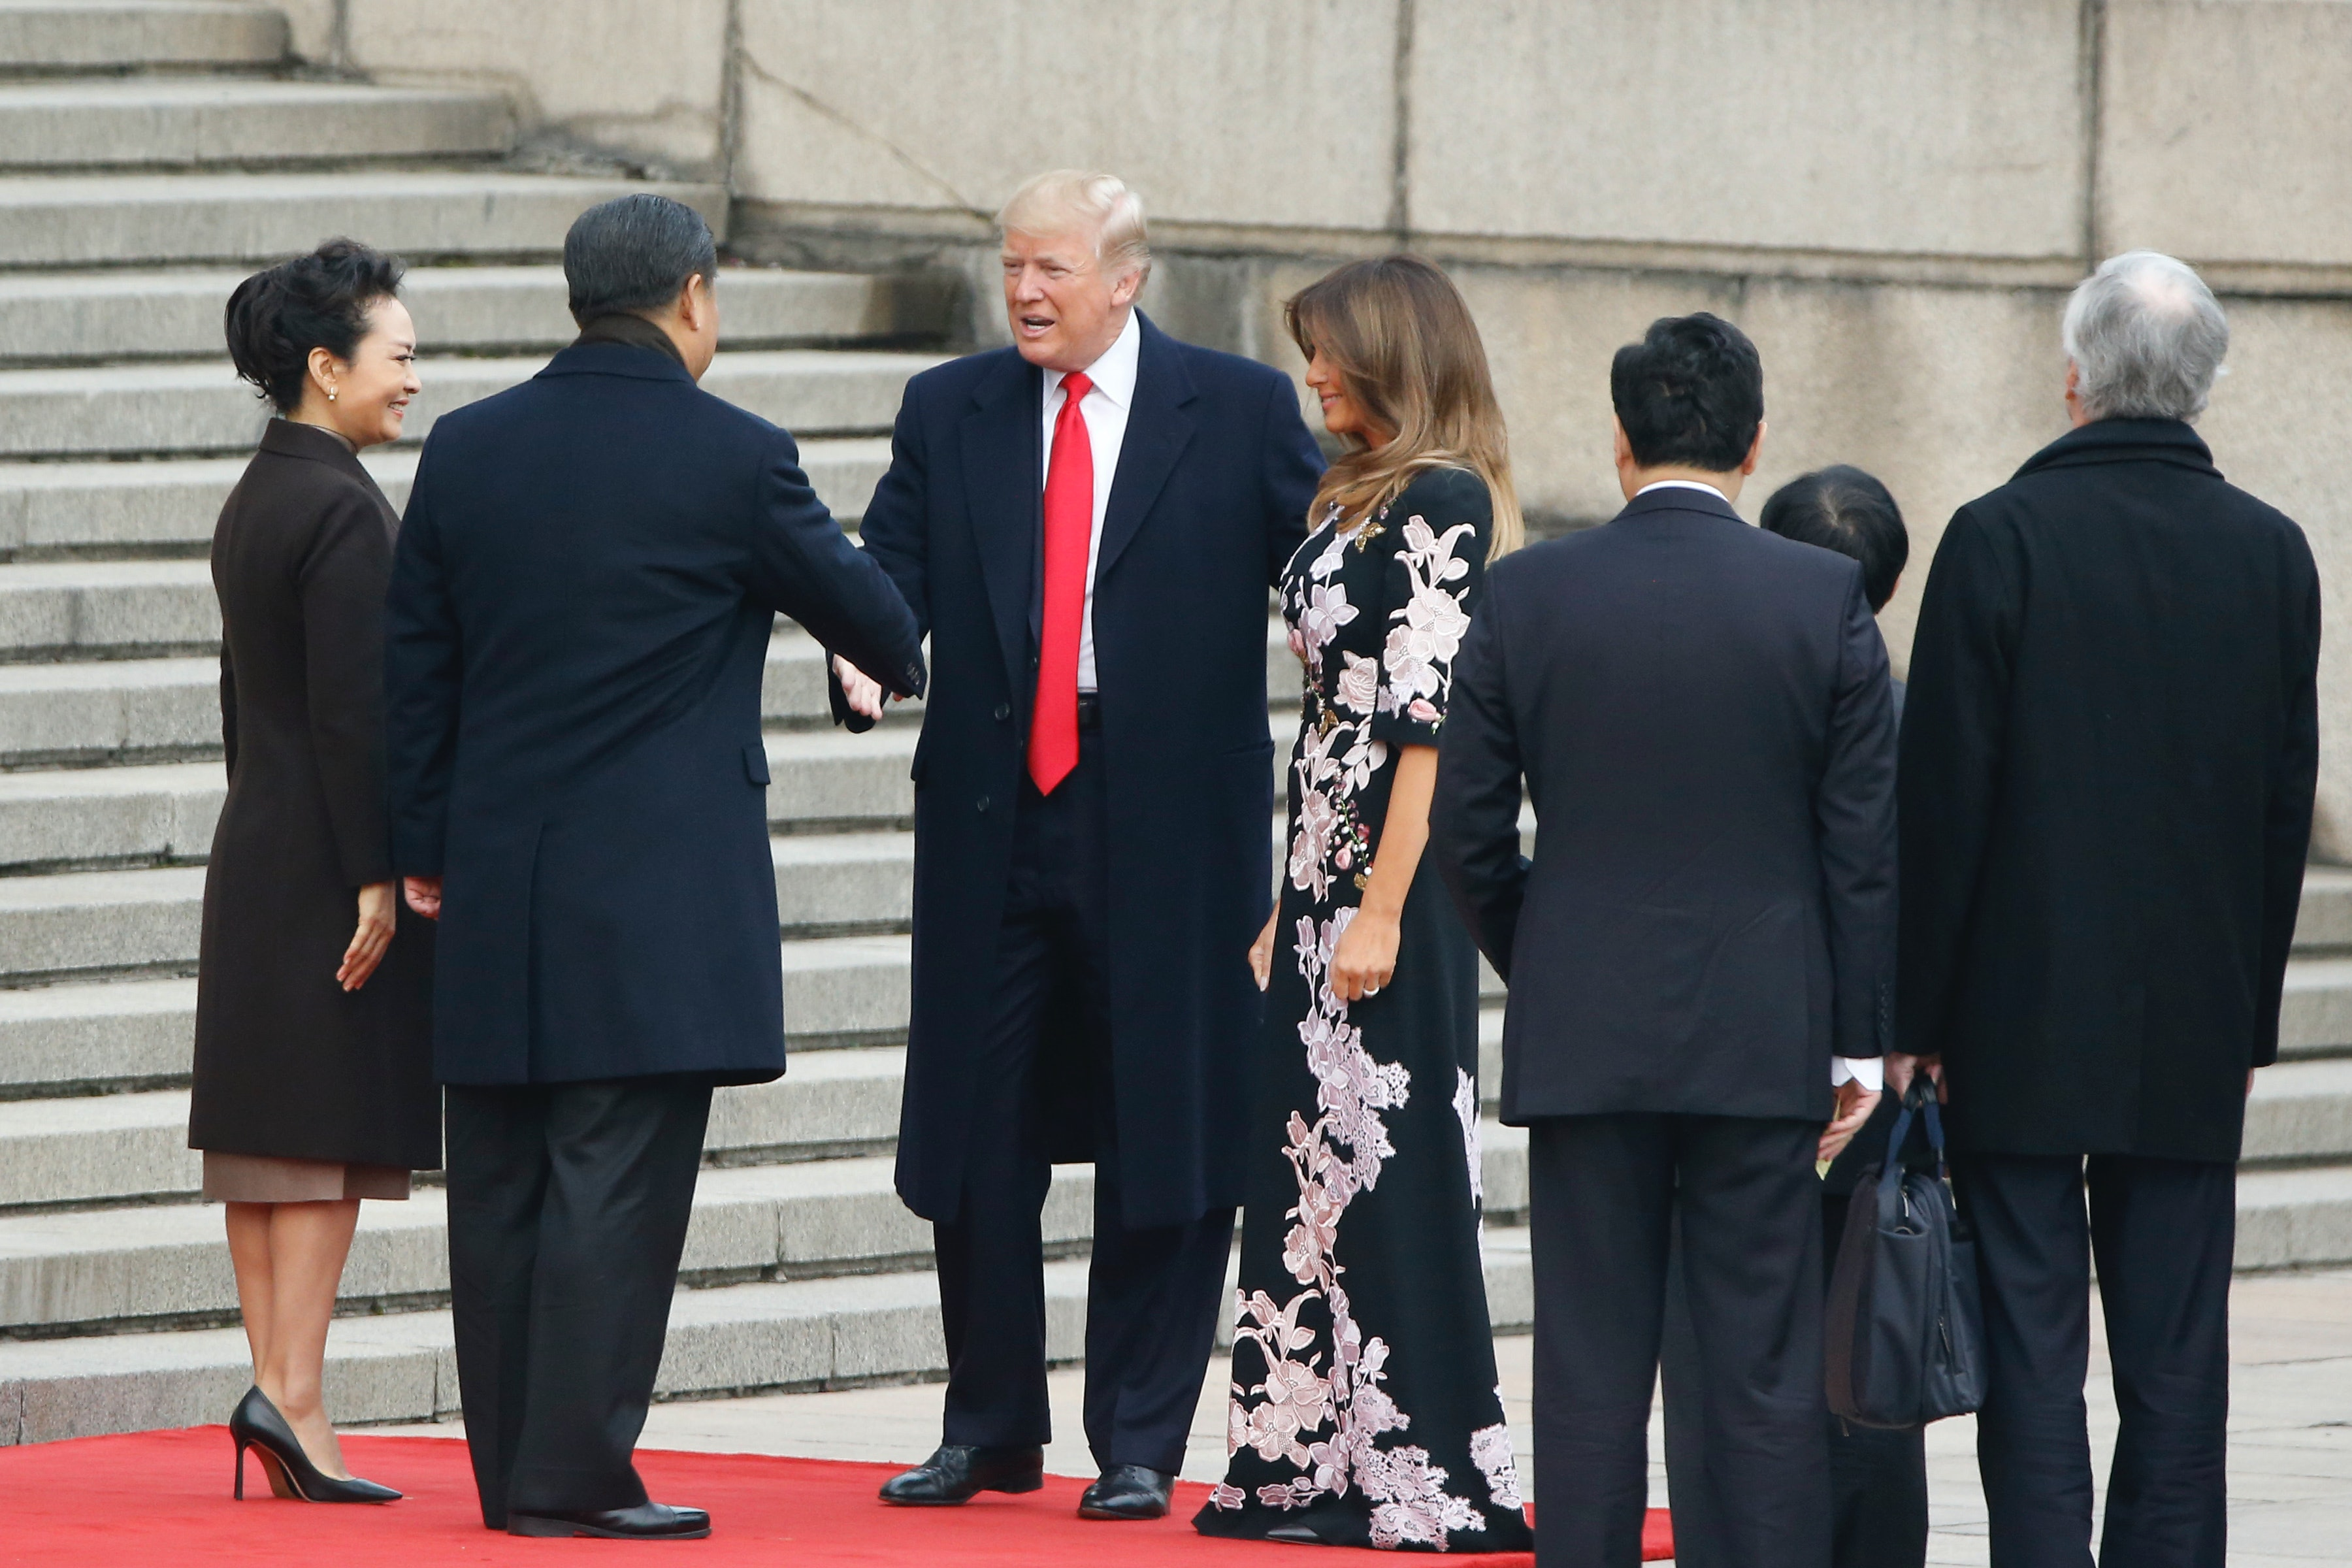 a23099e3d Melania Trump's Asia Trip Fashion Could Pay For A Year Of College